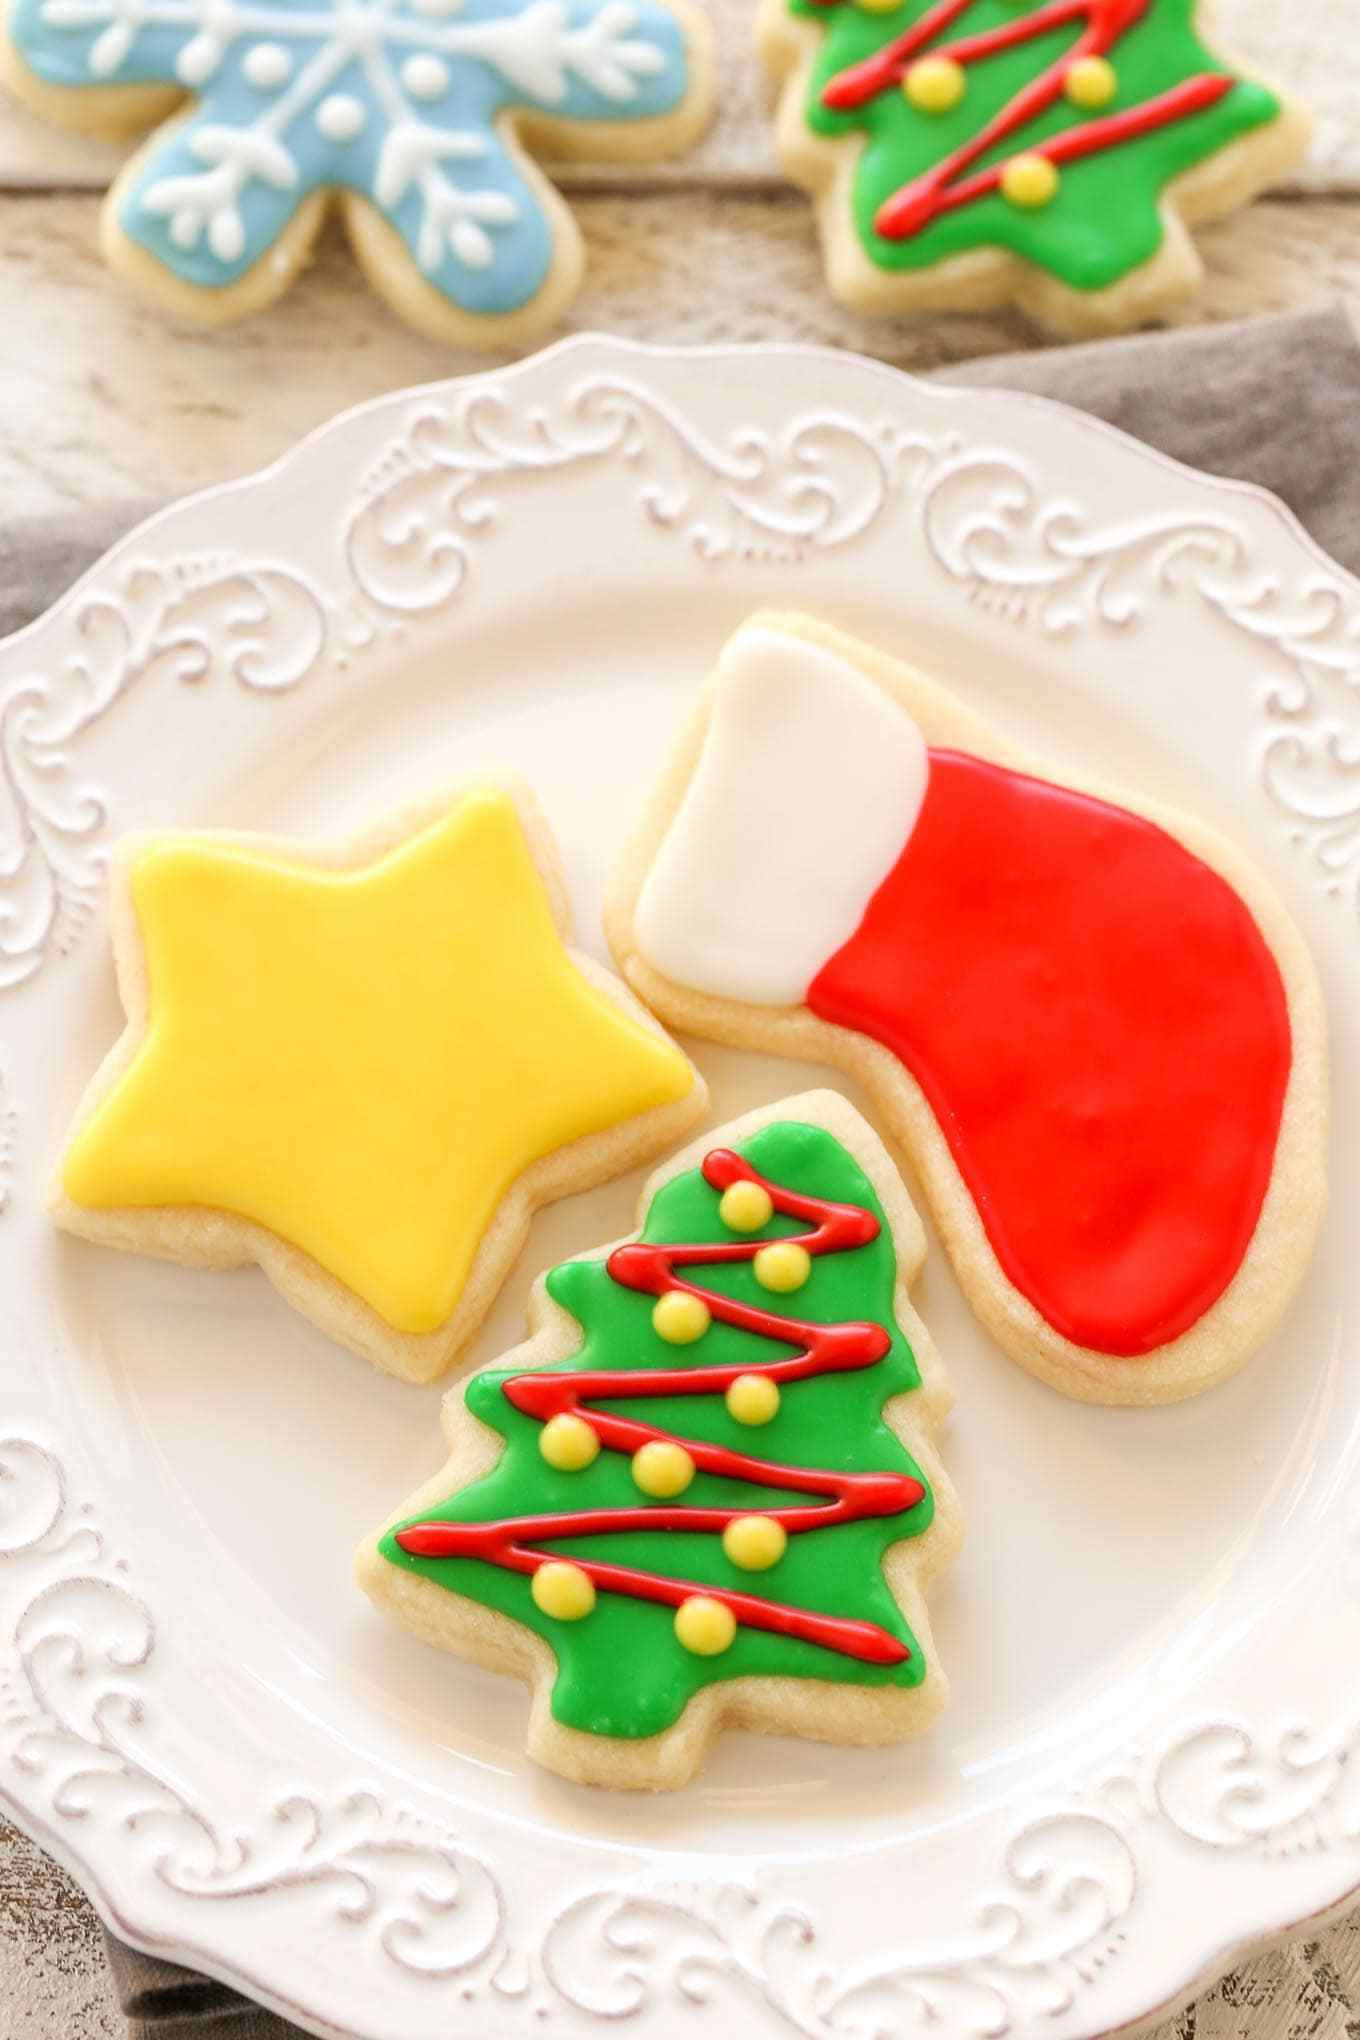 Christmas Cut Out Cookies  Soft Christmas Cut Out Sugar Cookies Live Well Bake ten